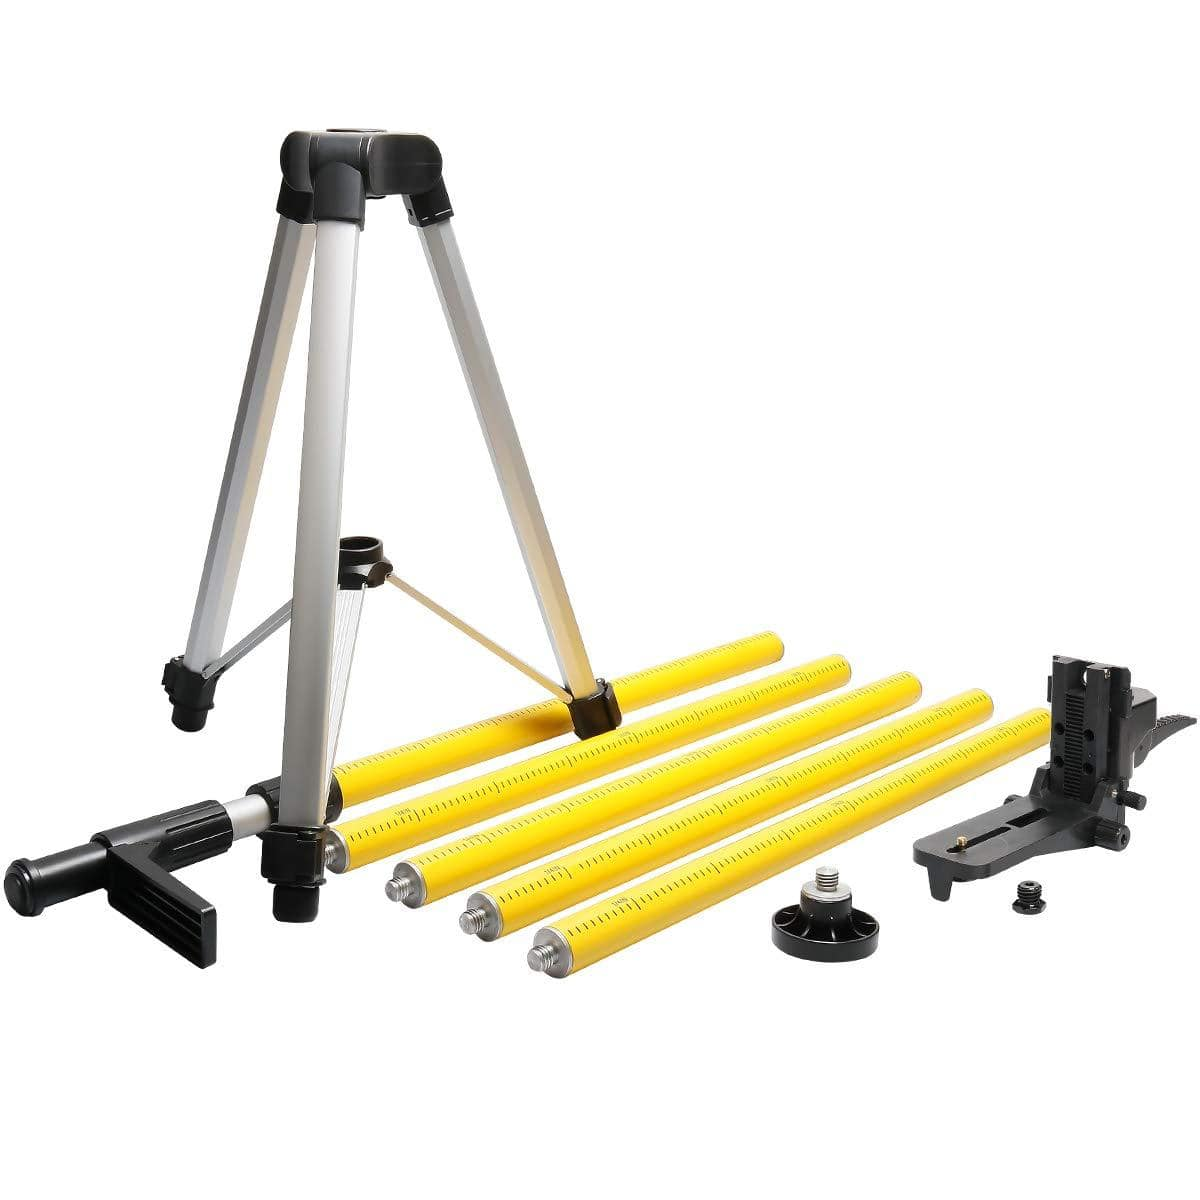 Huepar 12 Ft 3 7m Lasers Level Adapter Tripod Lp36